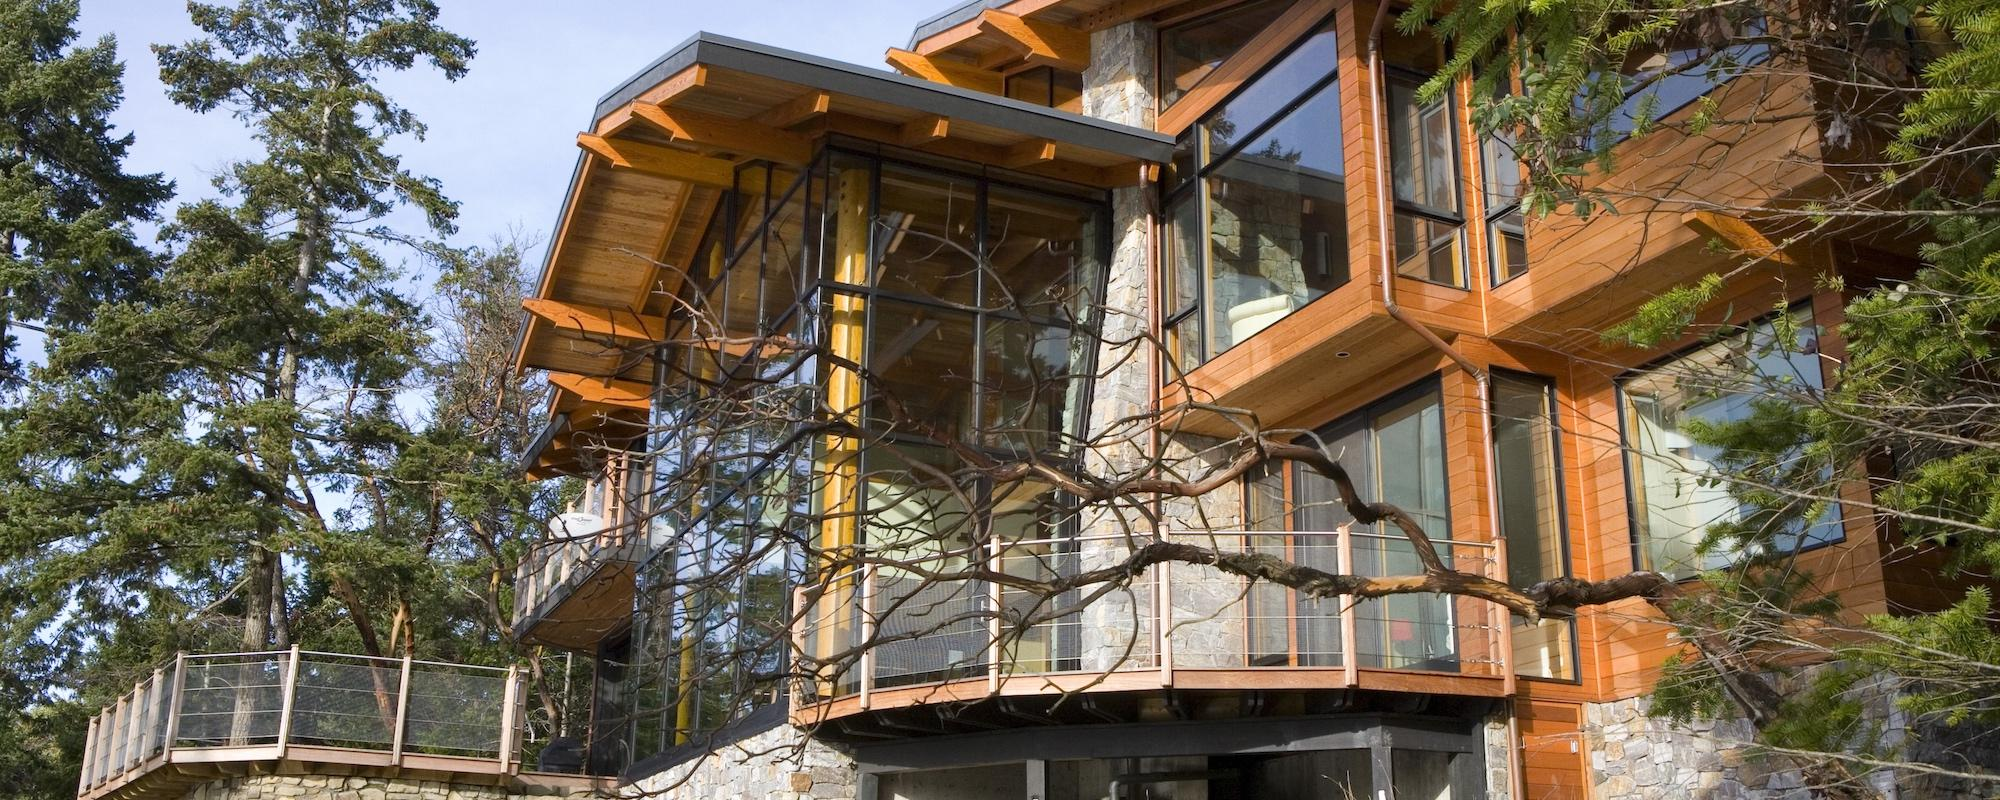 west coast style home on Irene Bay Road Pender Island built by Dave Dandenau of Gulf Islands Artisan Homes